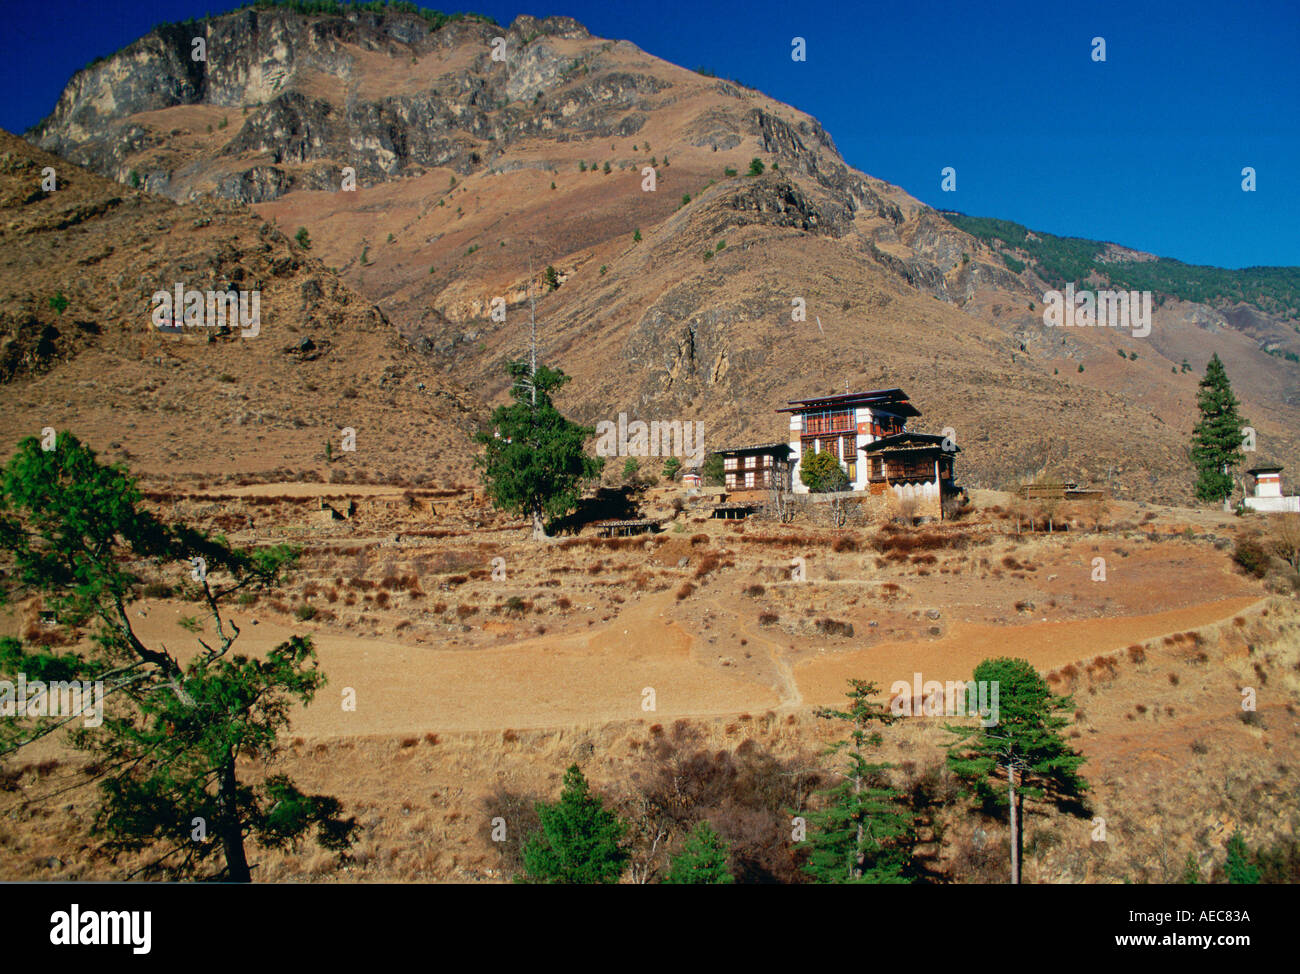 Chalet style houses and farmland Bhutan - Stock Image